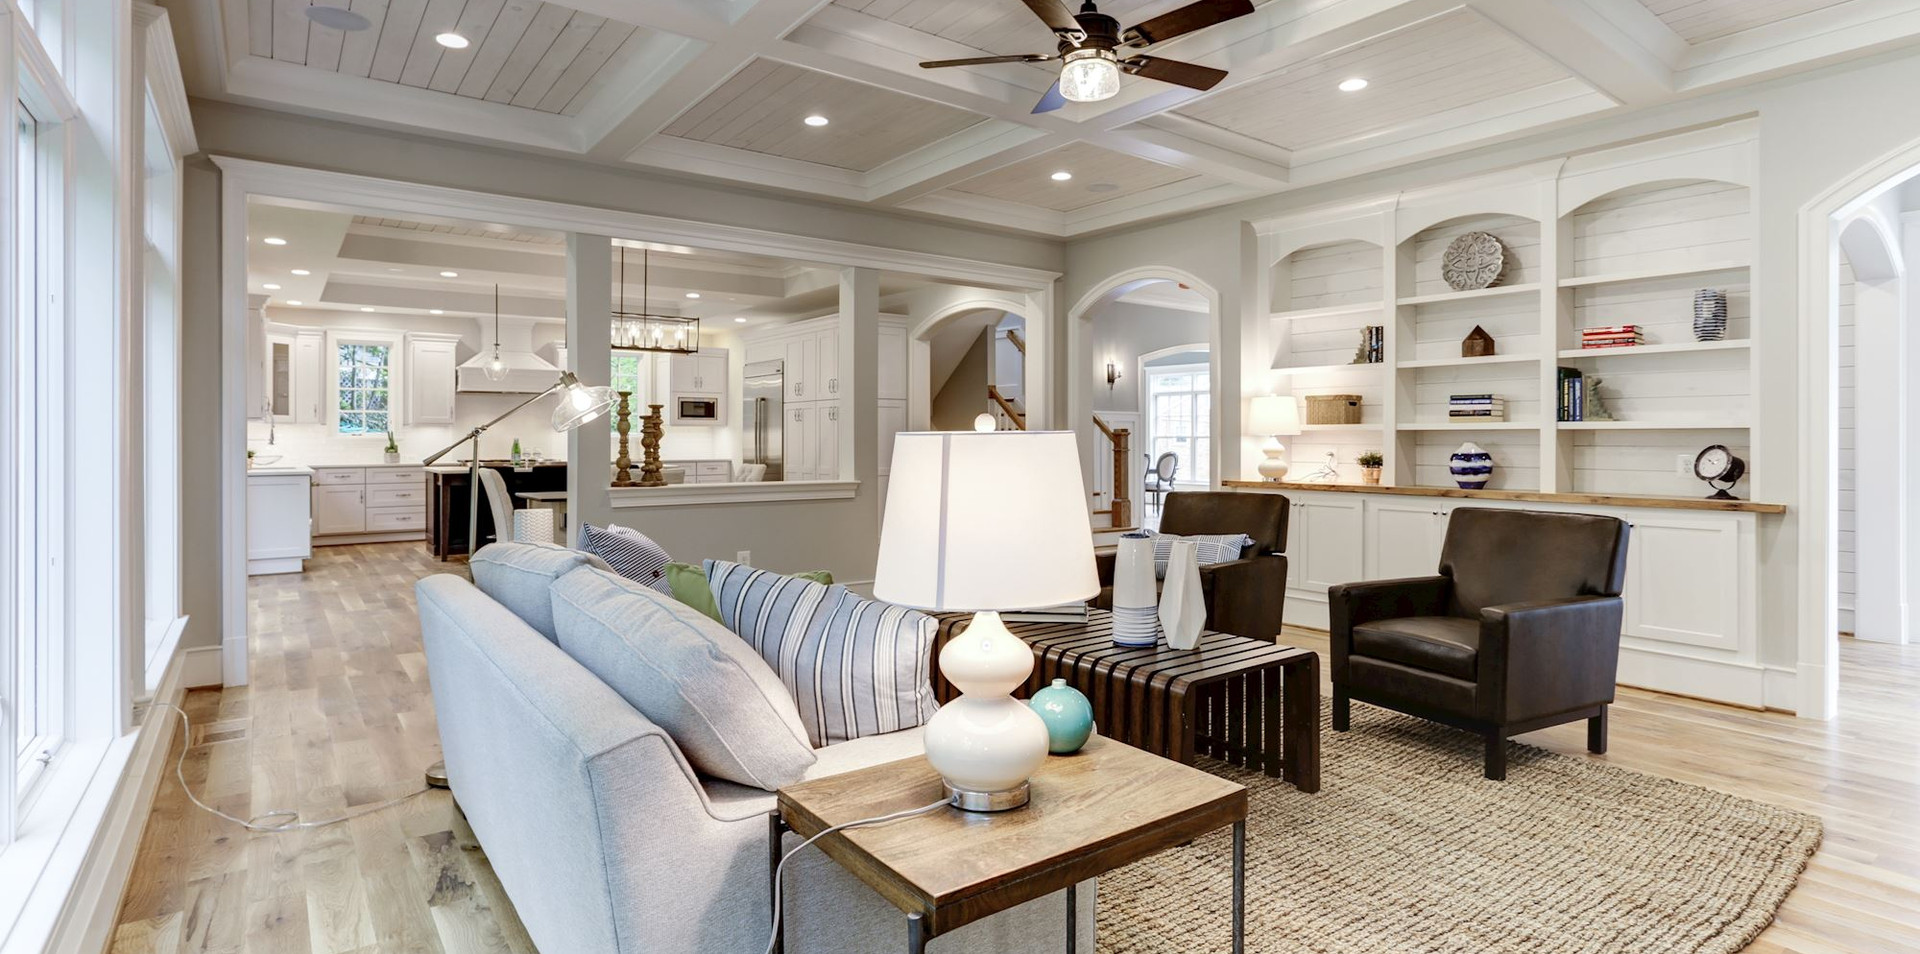 Family room with views into the kitchen